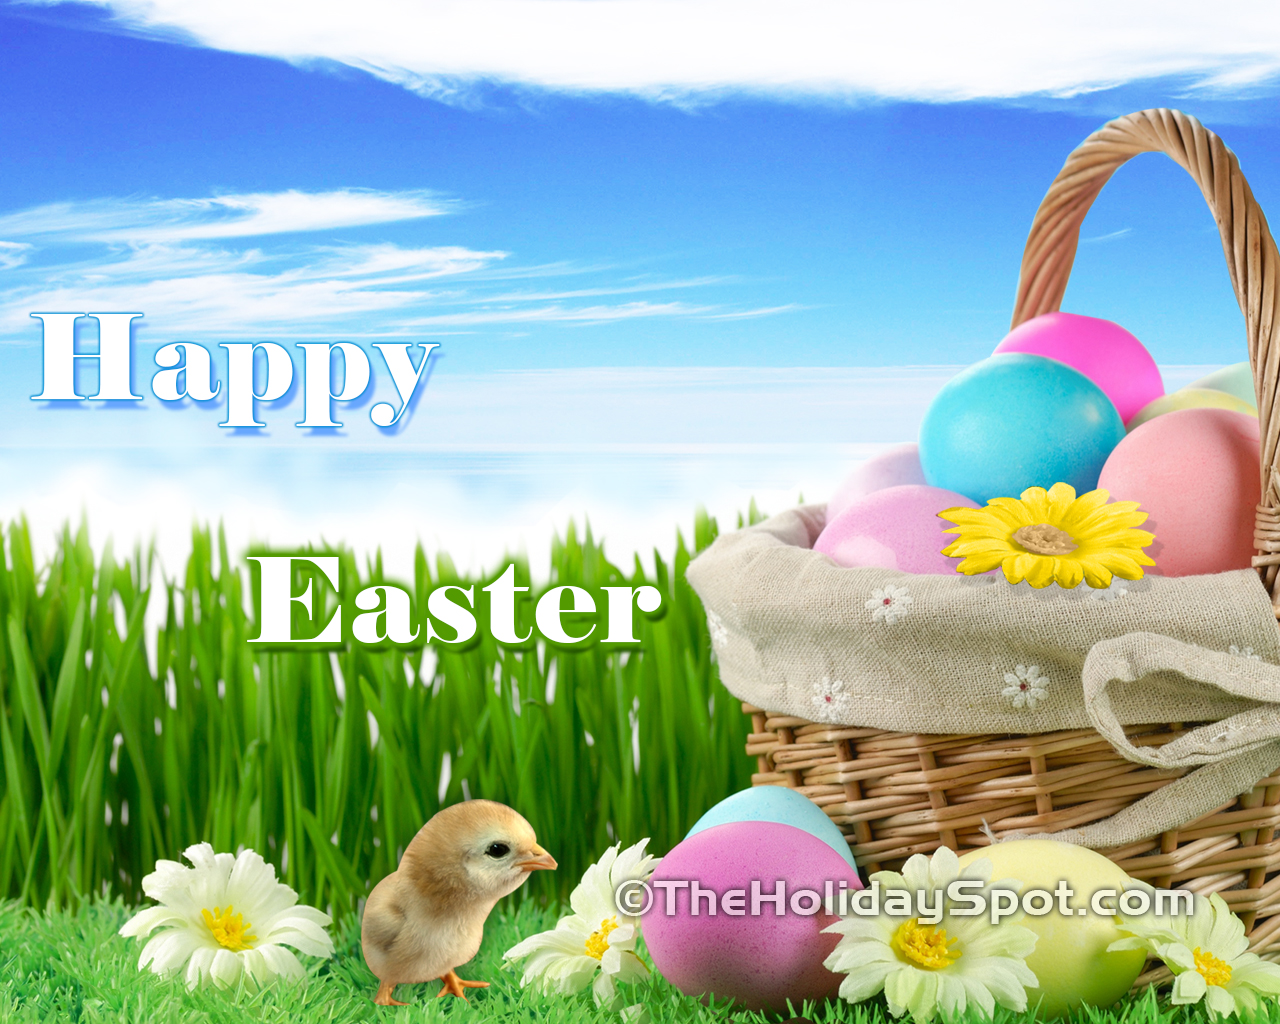 Happy Easter Hd Wallpapers Free Cute Hd Easter Wallpapers